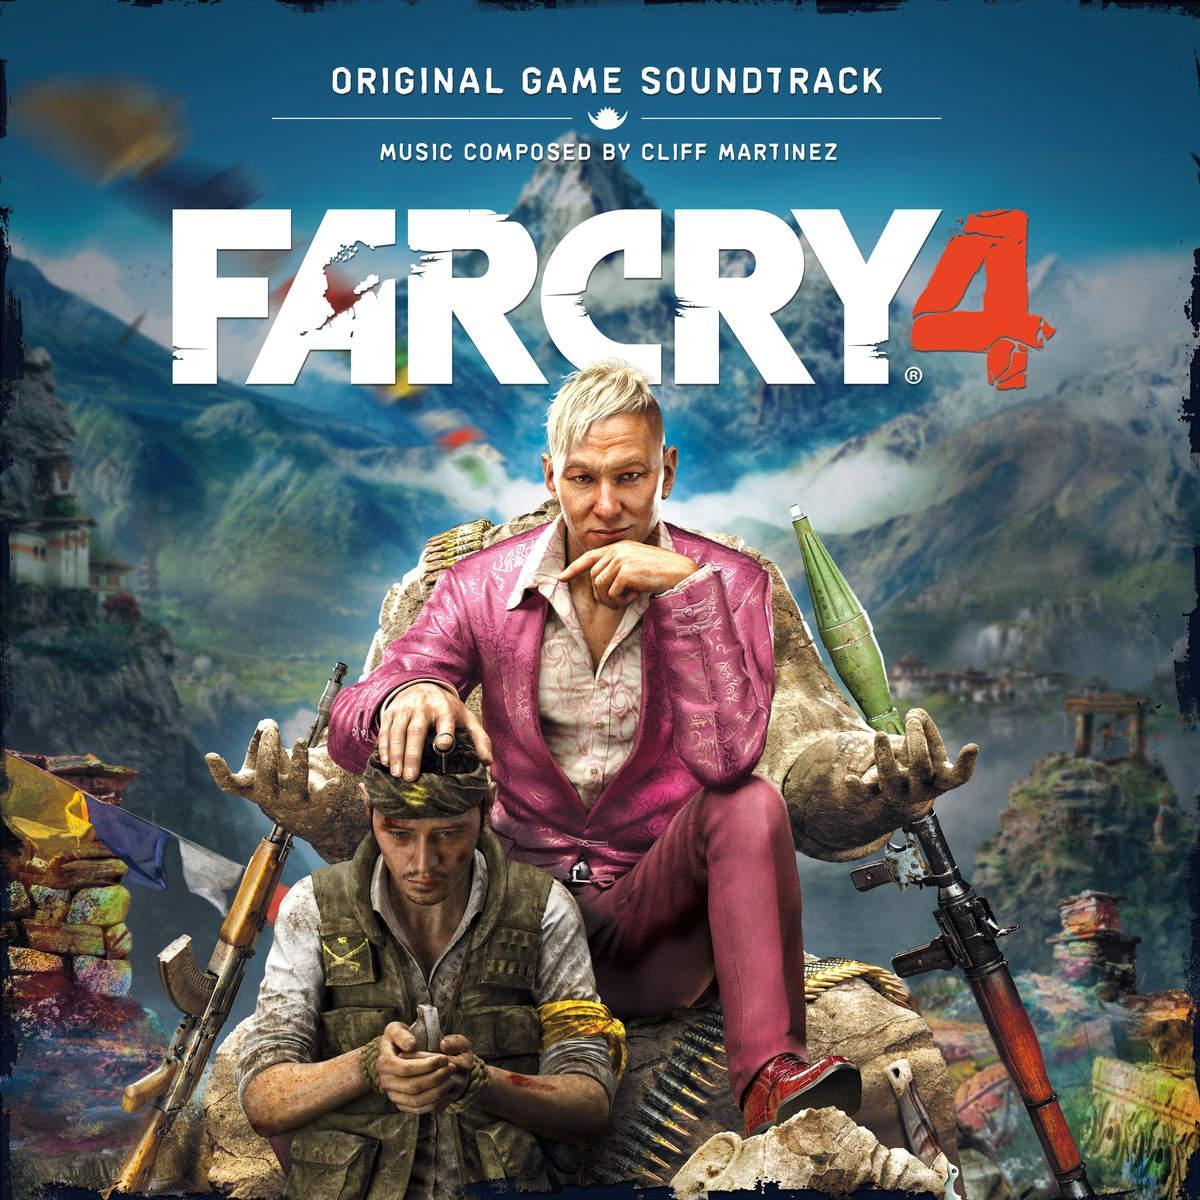 Far-Cry-4-Original-Game-Soundtrack__cover1200x1200.jpg